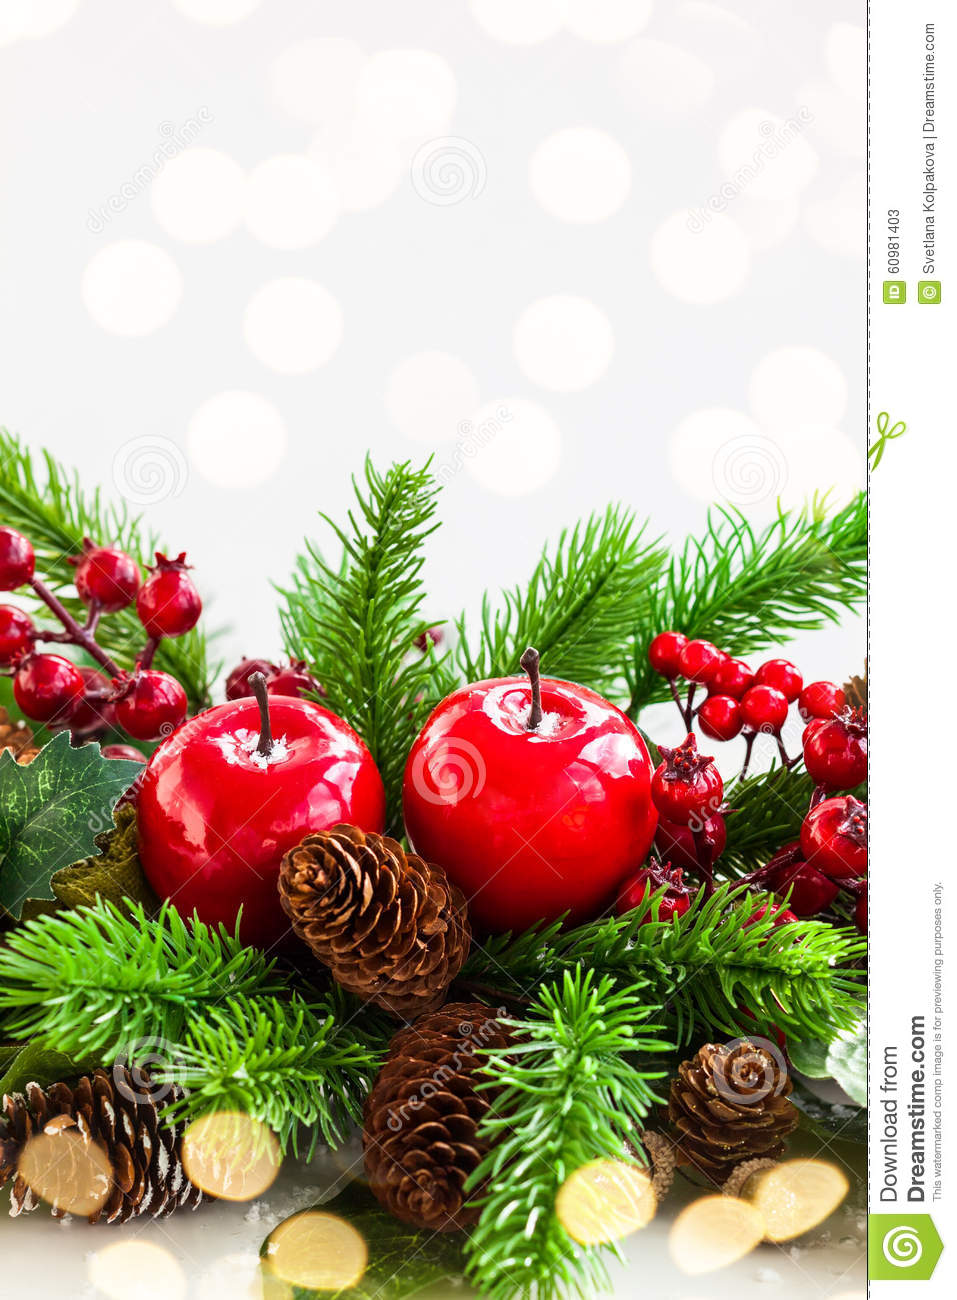 Christmas decorations stock photo image 60981403 for Fir cone christmas tree decorations